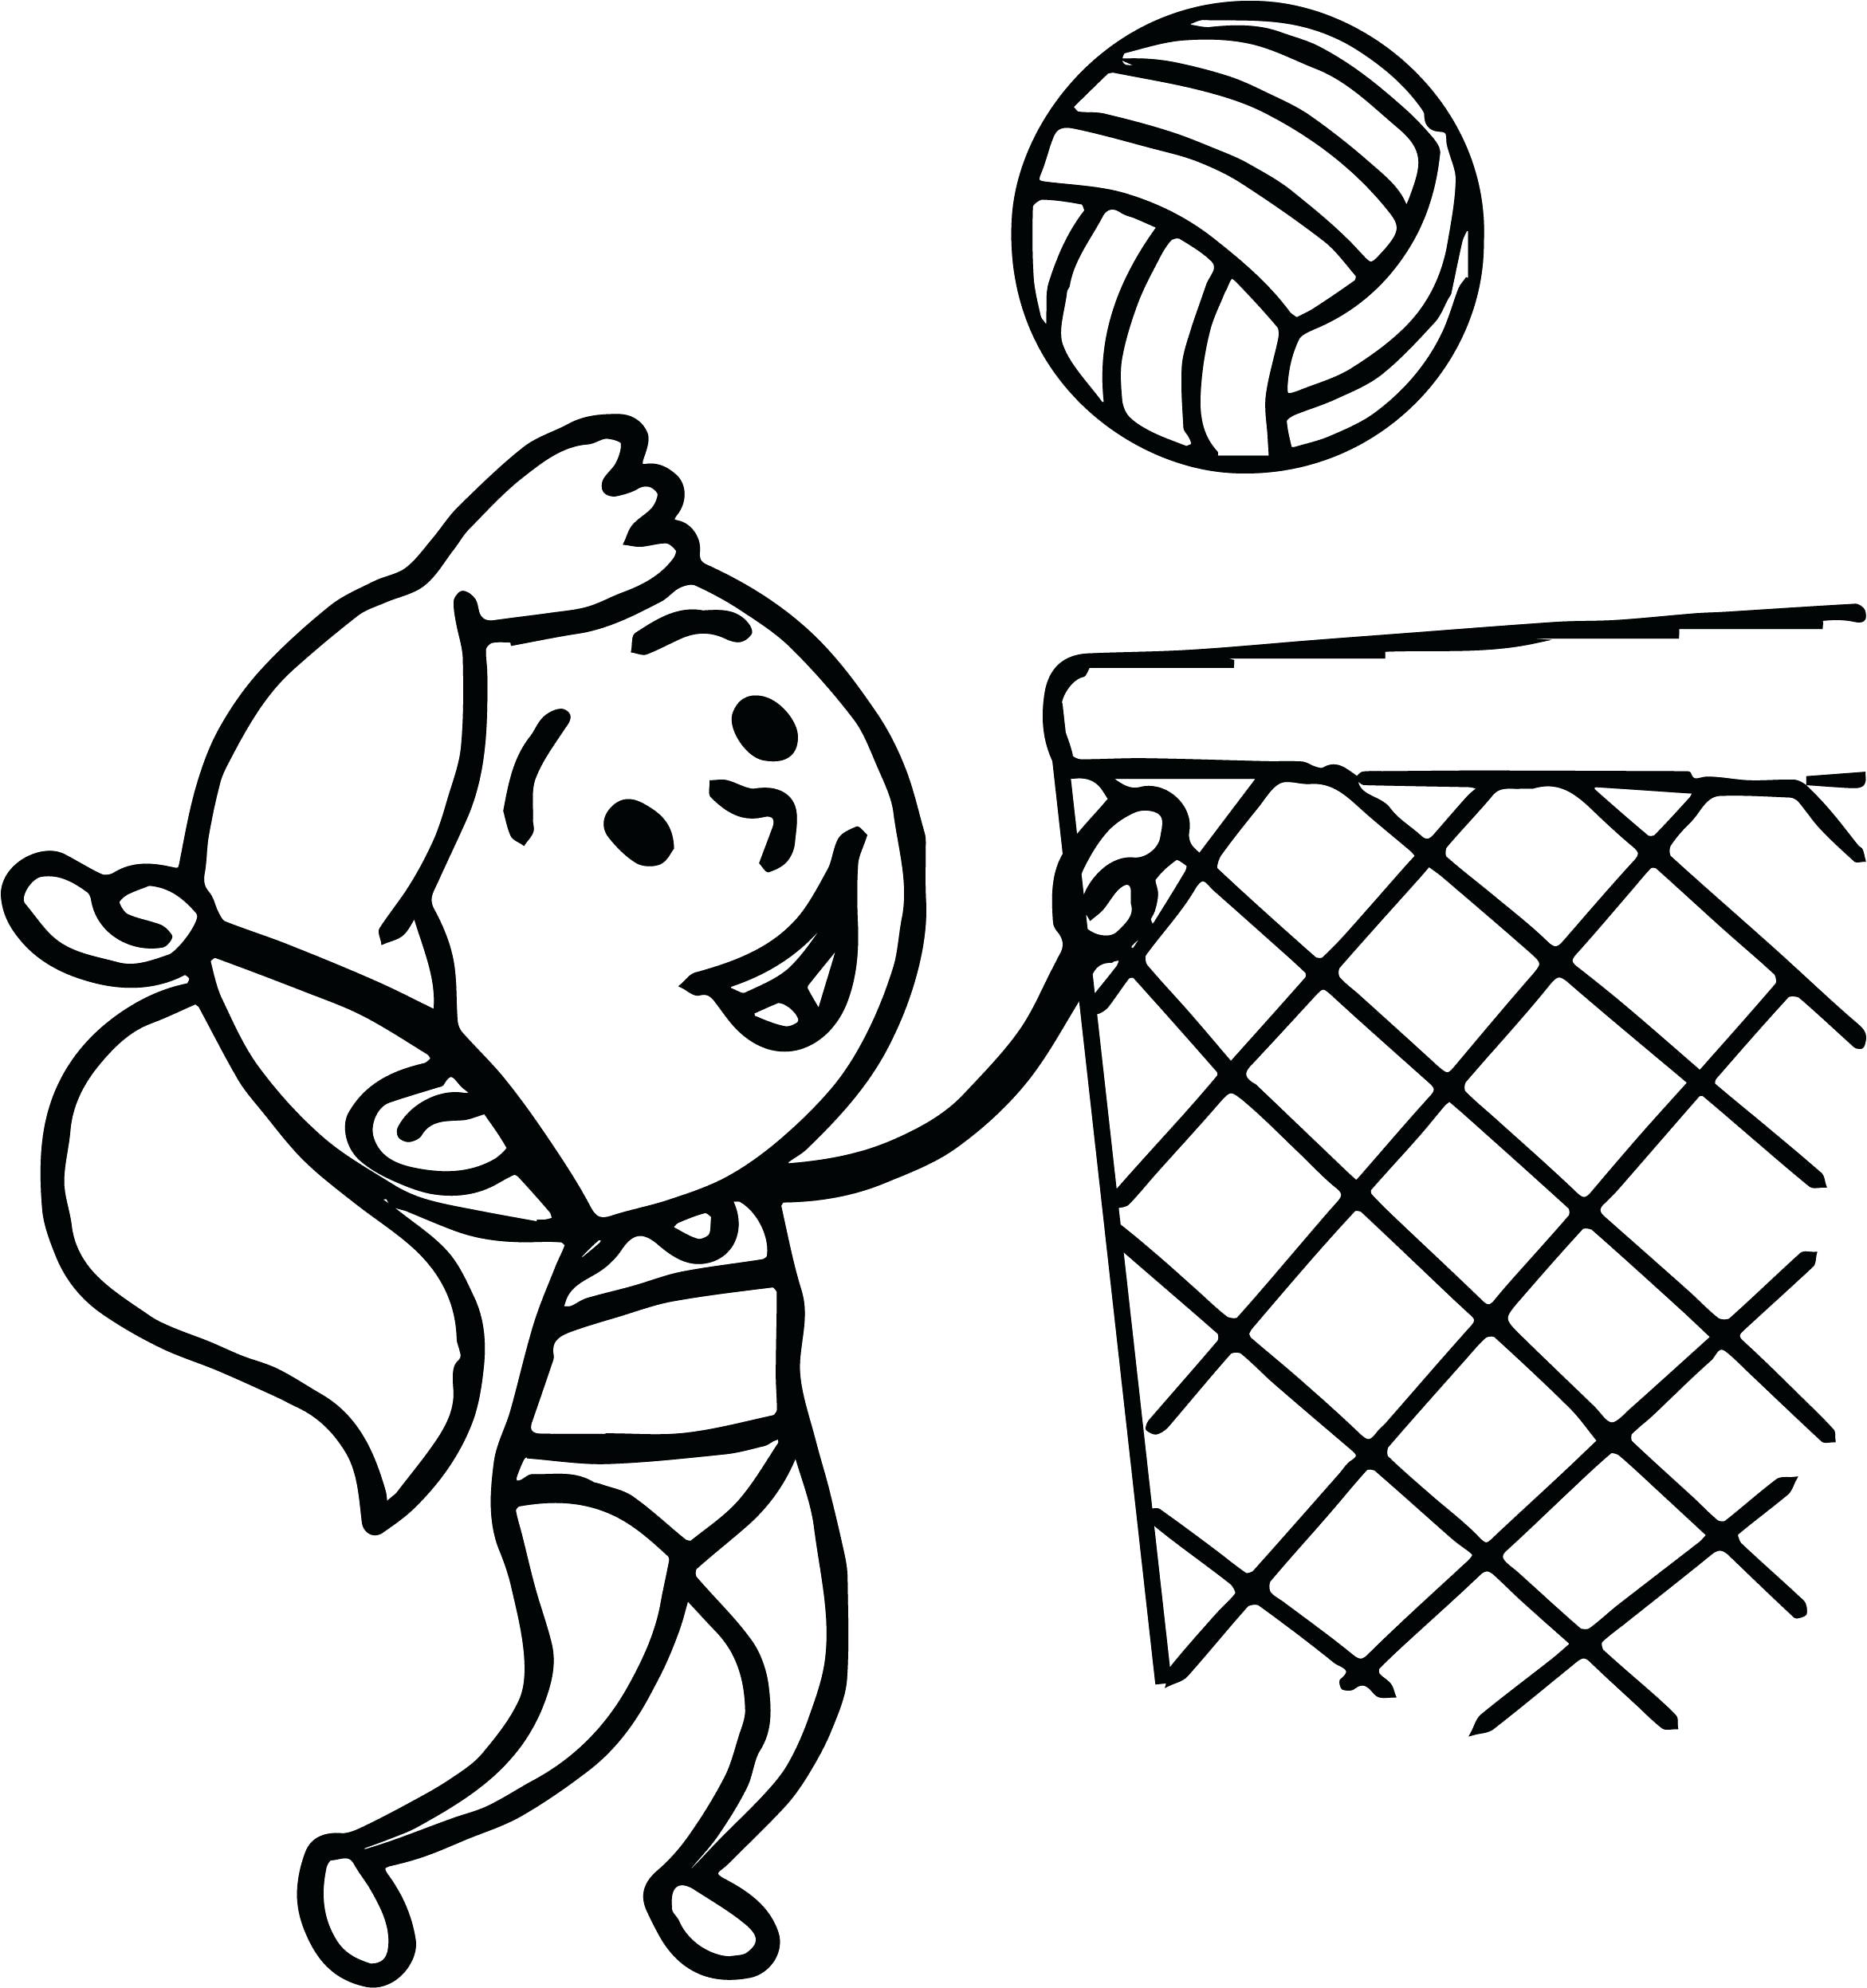 2342x2494 New Coloring Volleyball Coloring Pages Girl In Bathing Suit